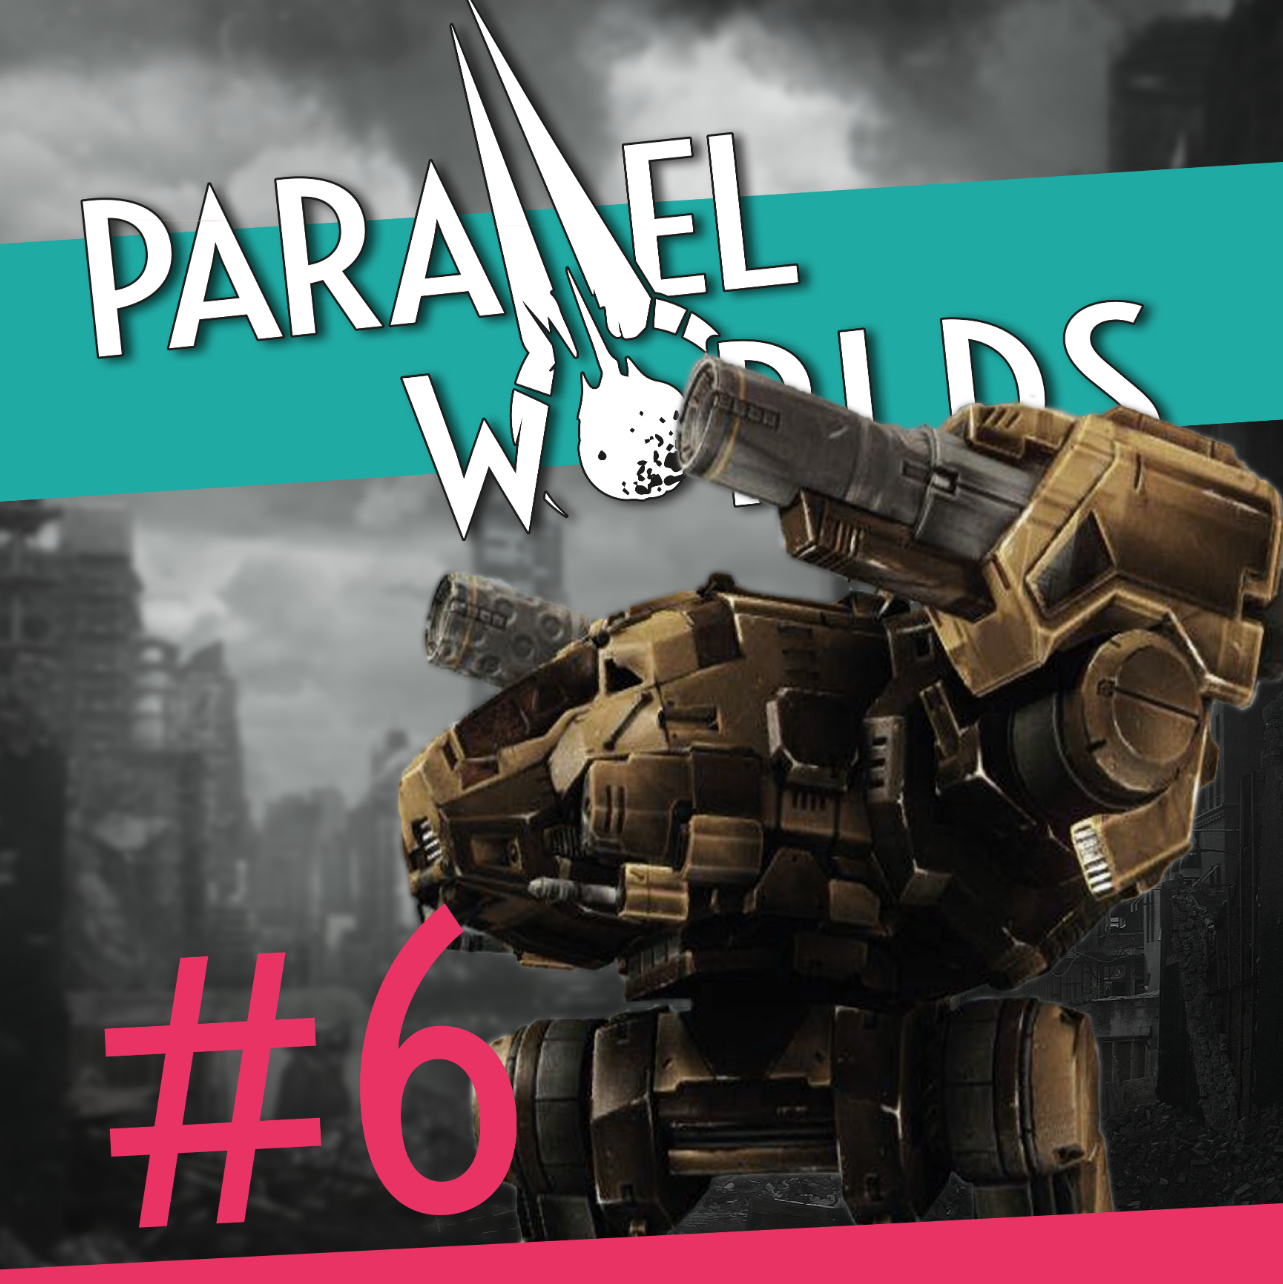 Parallel Worlds Issue 6 -  Parallel Worlds